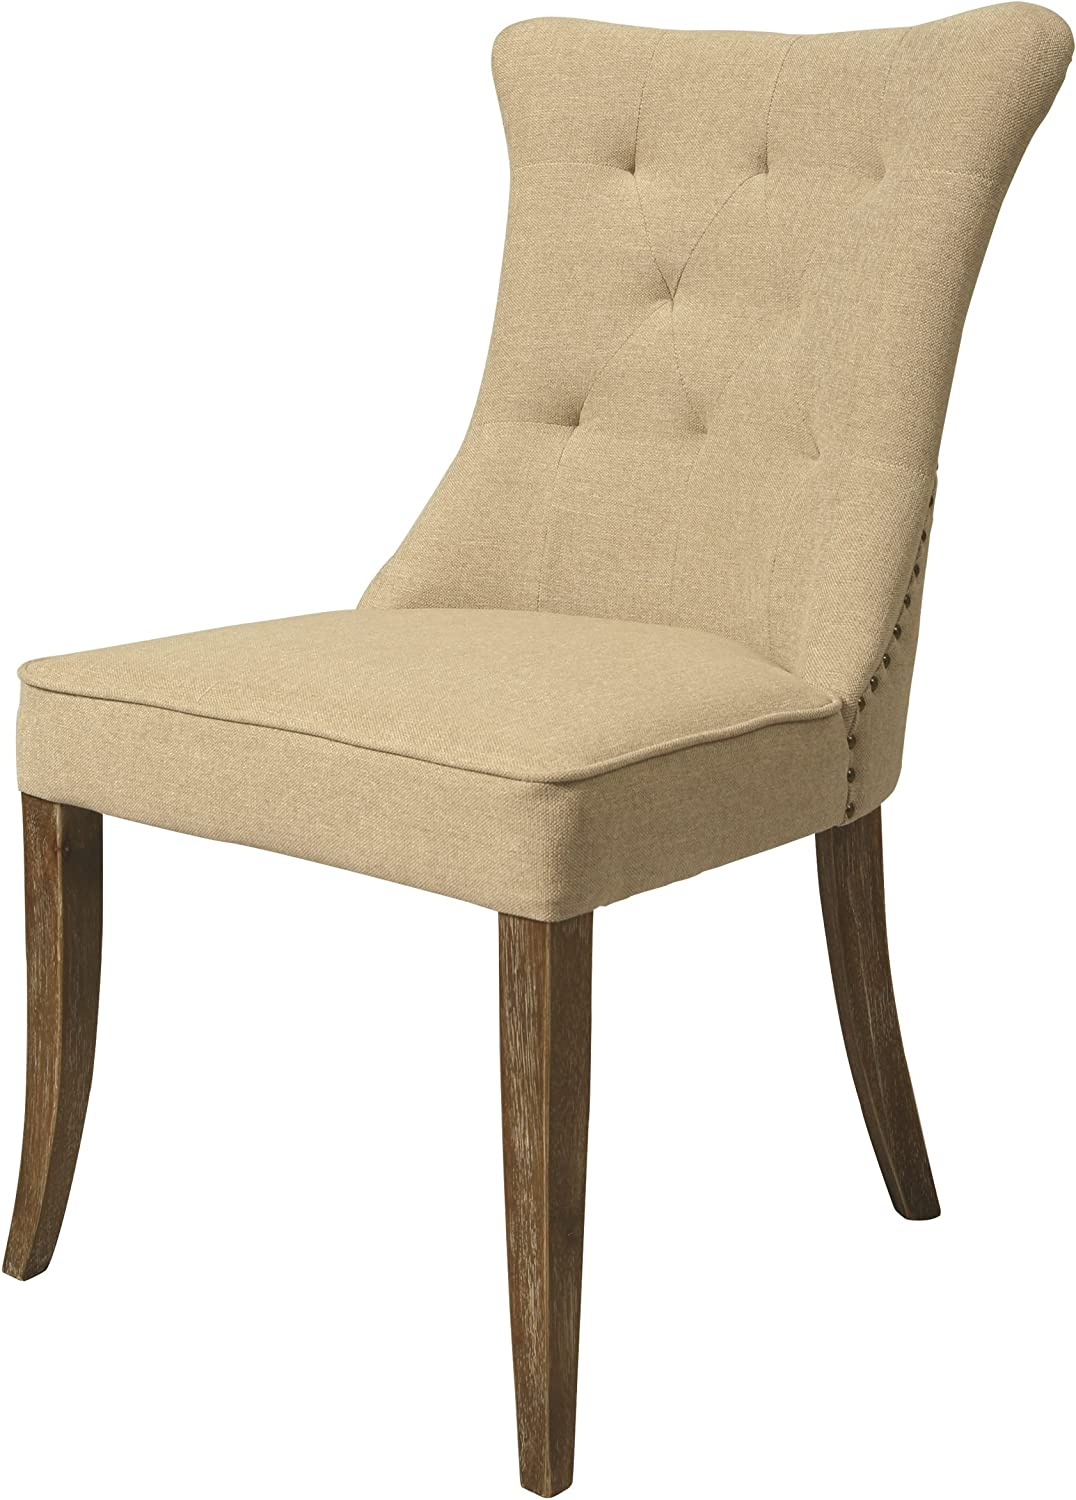 Impacterra Kamioka Side Chair, Cream My Linen, (QLKM11036058)